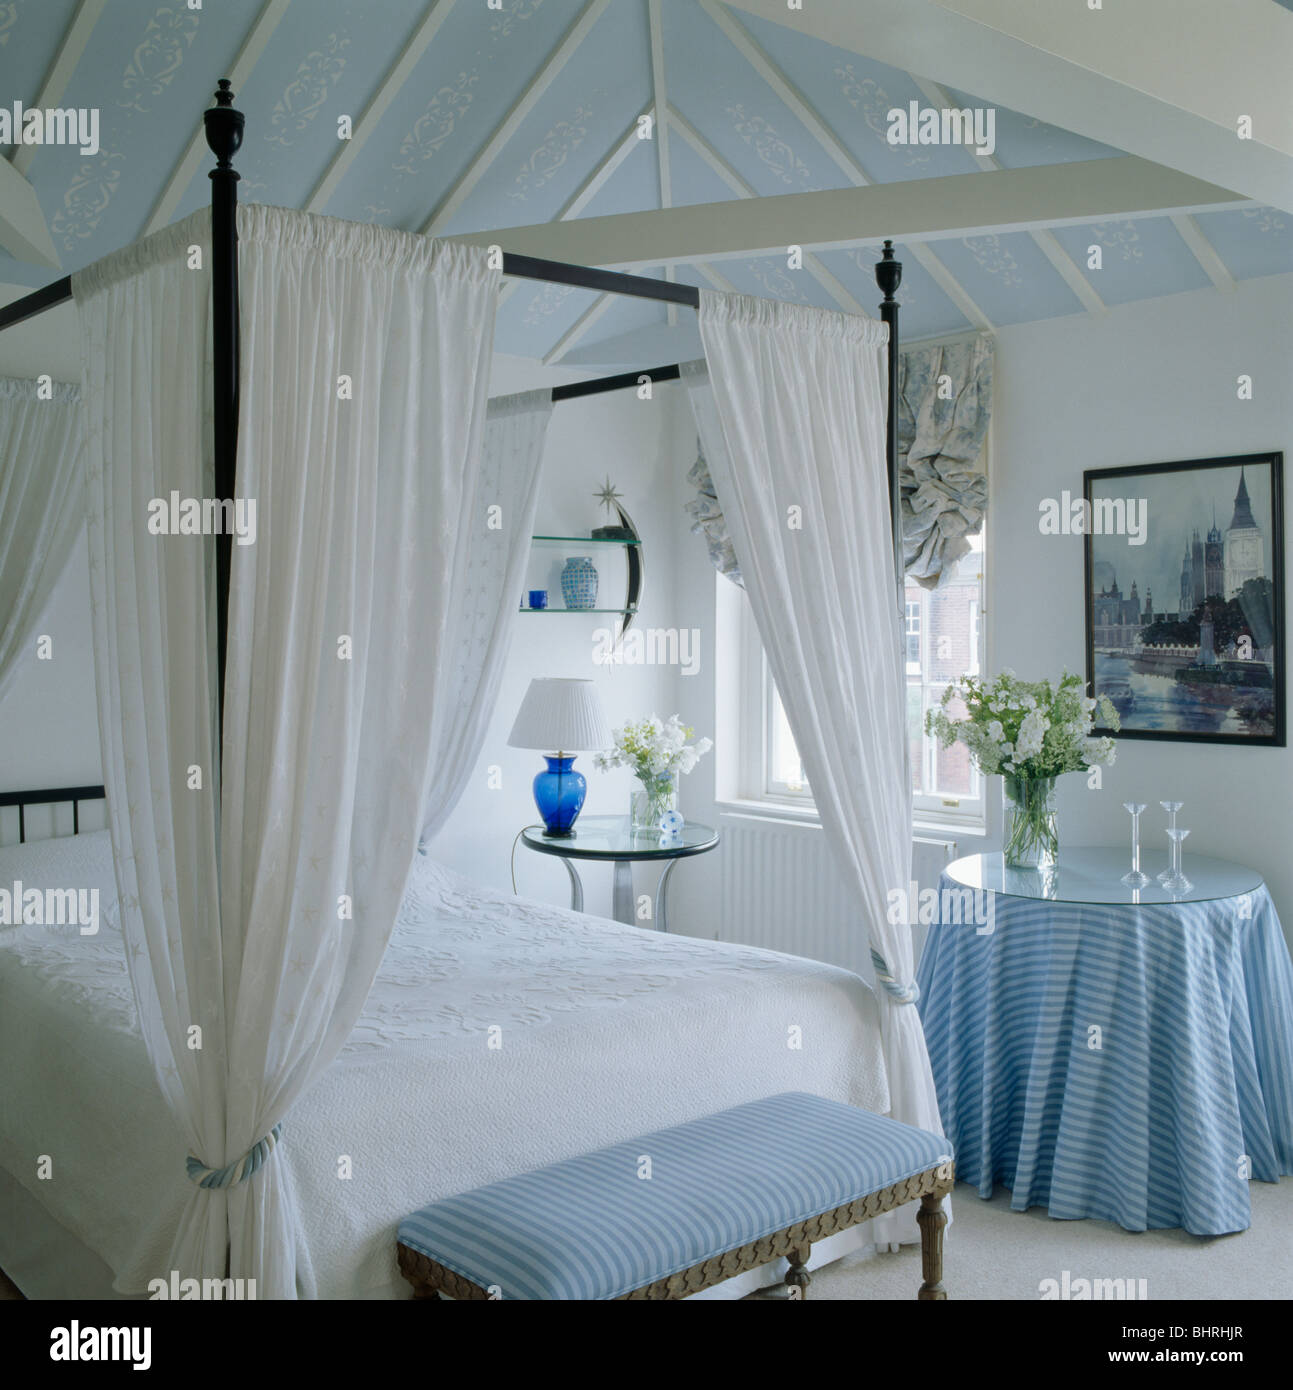 Simple four poster bed with white drapes in white bedroom with blue stool  and small table with blue cloth below blue ceiling. Simple four poster bed with white drapes in white bedroom with